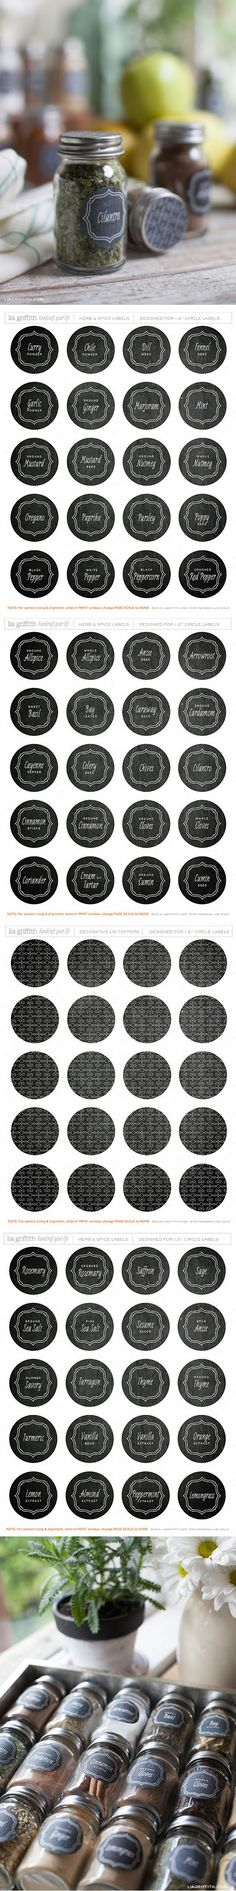 Free Printable Round Herb Spice Labels - used these today to spruce up my spice bottles - these are so cute with their faux-chalkboard paint look! This set has one of the biggest varieties of spice names that I've seen in a free set! Printable Labels, Free Printables, Printable Vintage, Spice Bottles, Spice Jars, Etiquette Vintage, Spice Labels, Food Labels, Spice Organization